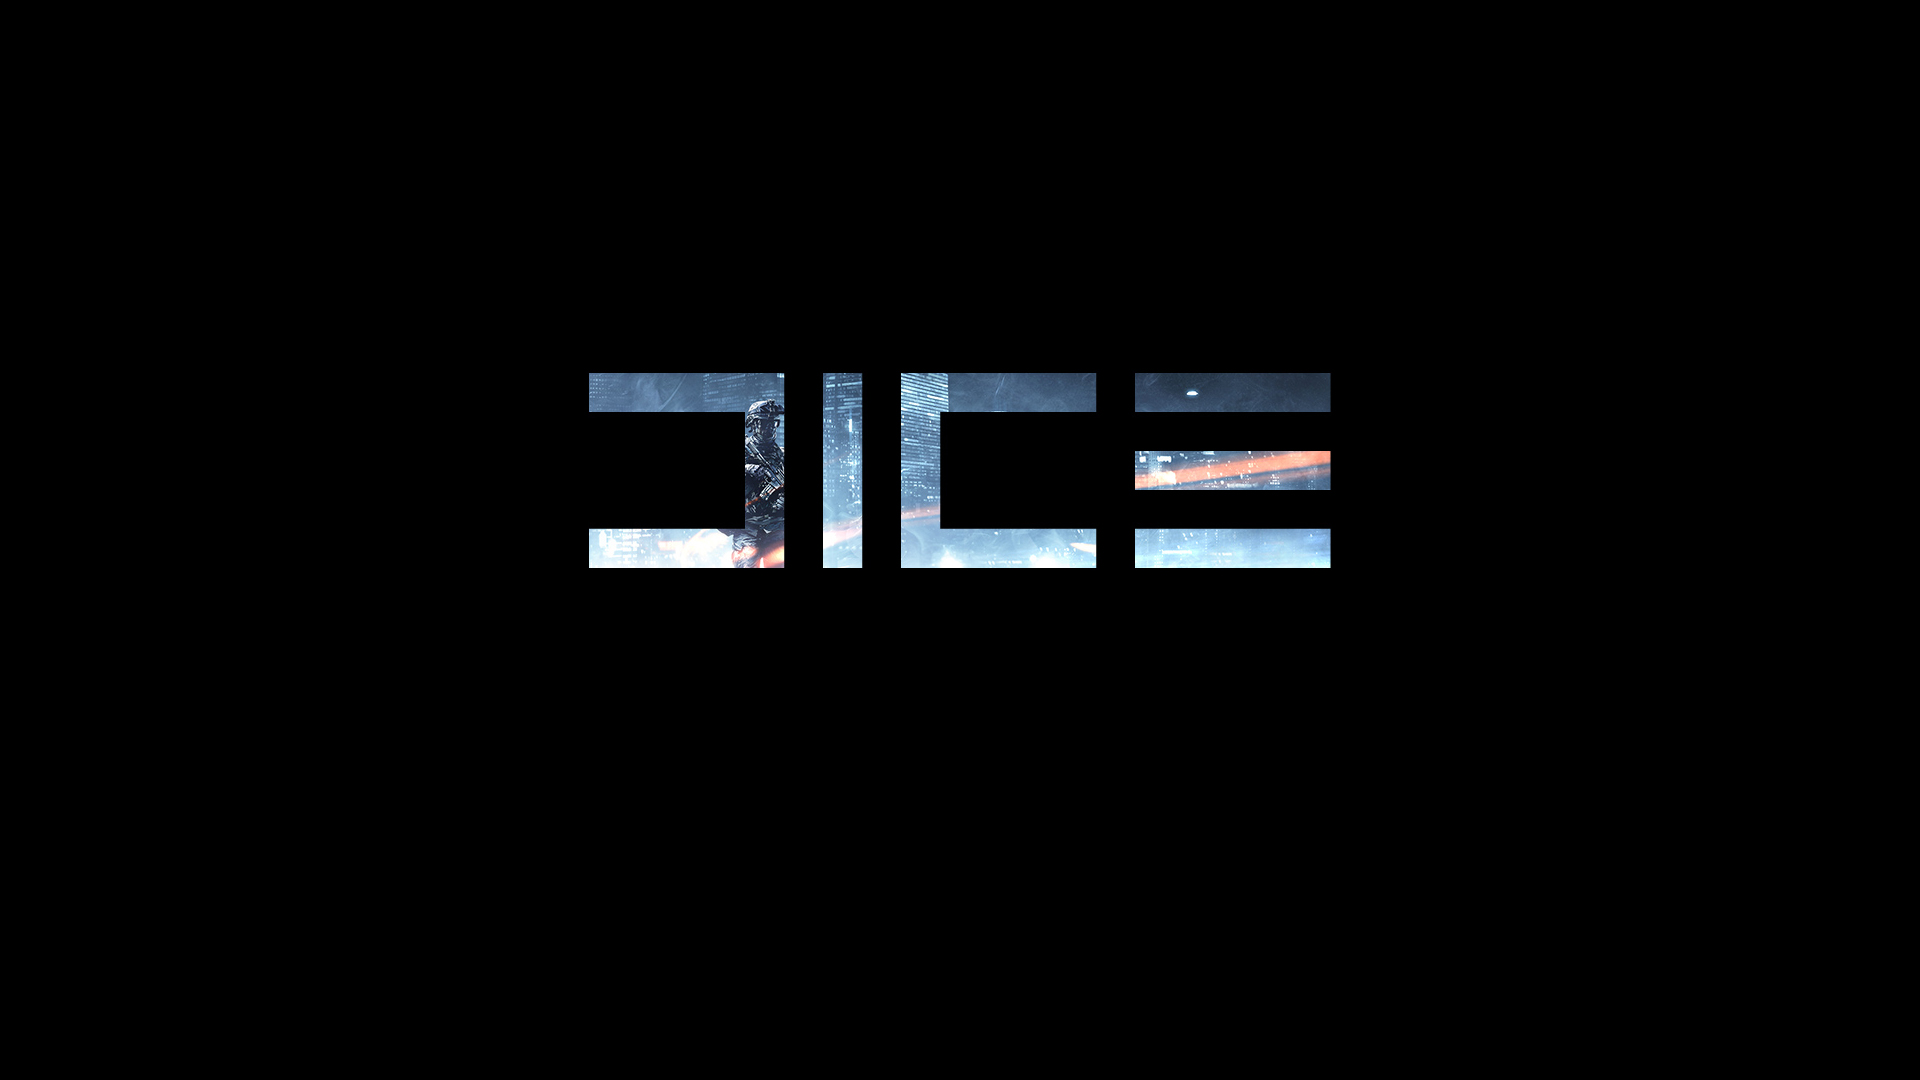 DICE HD Wallpaper Image Frostbite 2 Mod DB